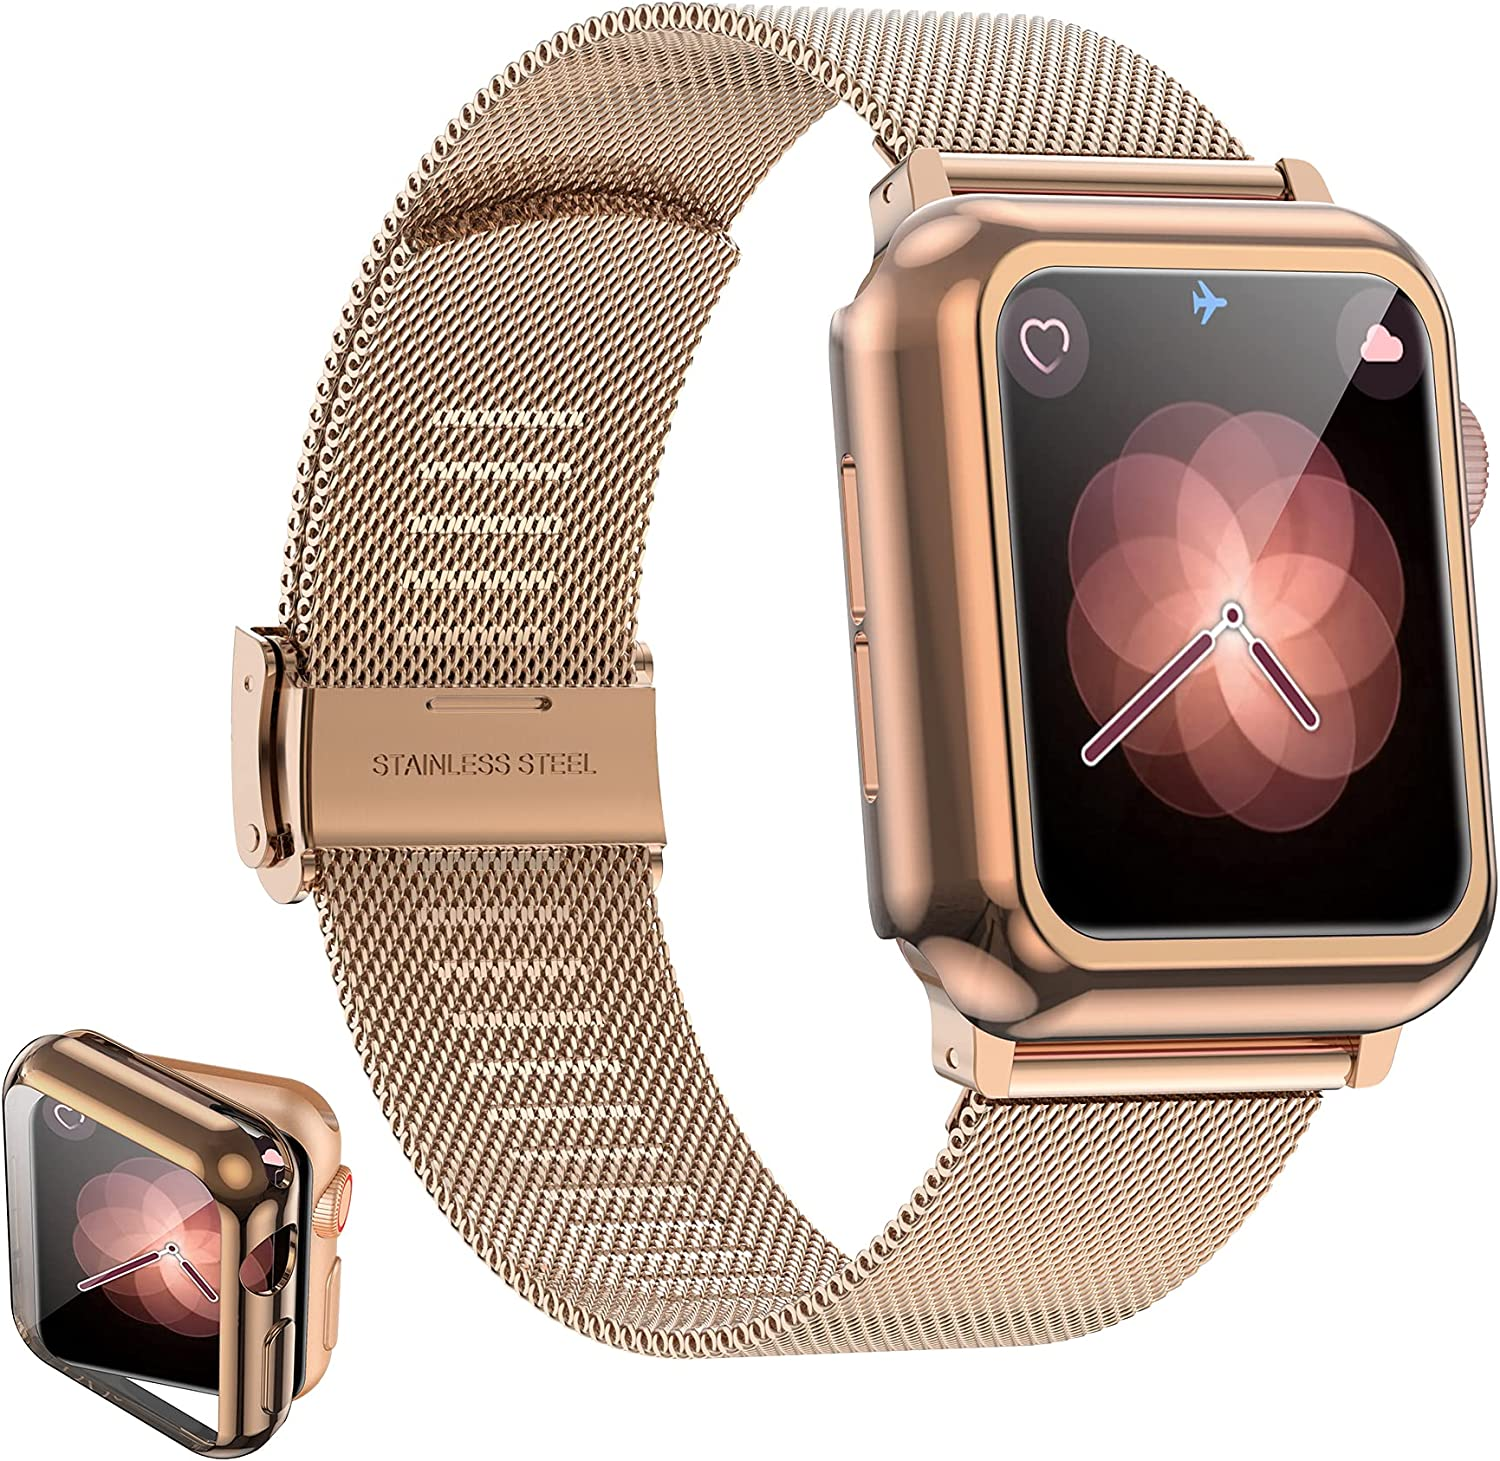 Girovo Compatible with Apple Watch Band 40mm Women Men, Stainless Steel Mesh iWatch Bands with Screen Protector Case Cover Accessories for Apple Watch Bands Series 6/SE/Series 5/Series 4, Rose Gold